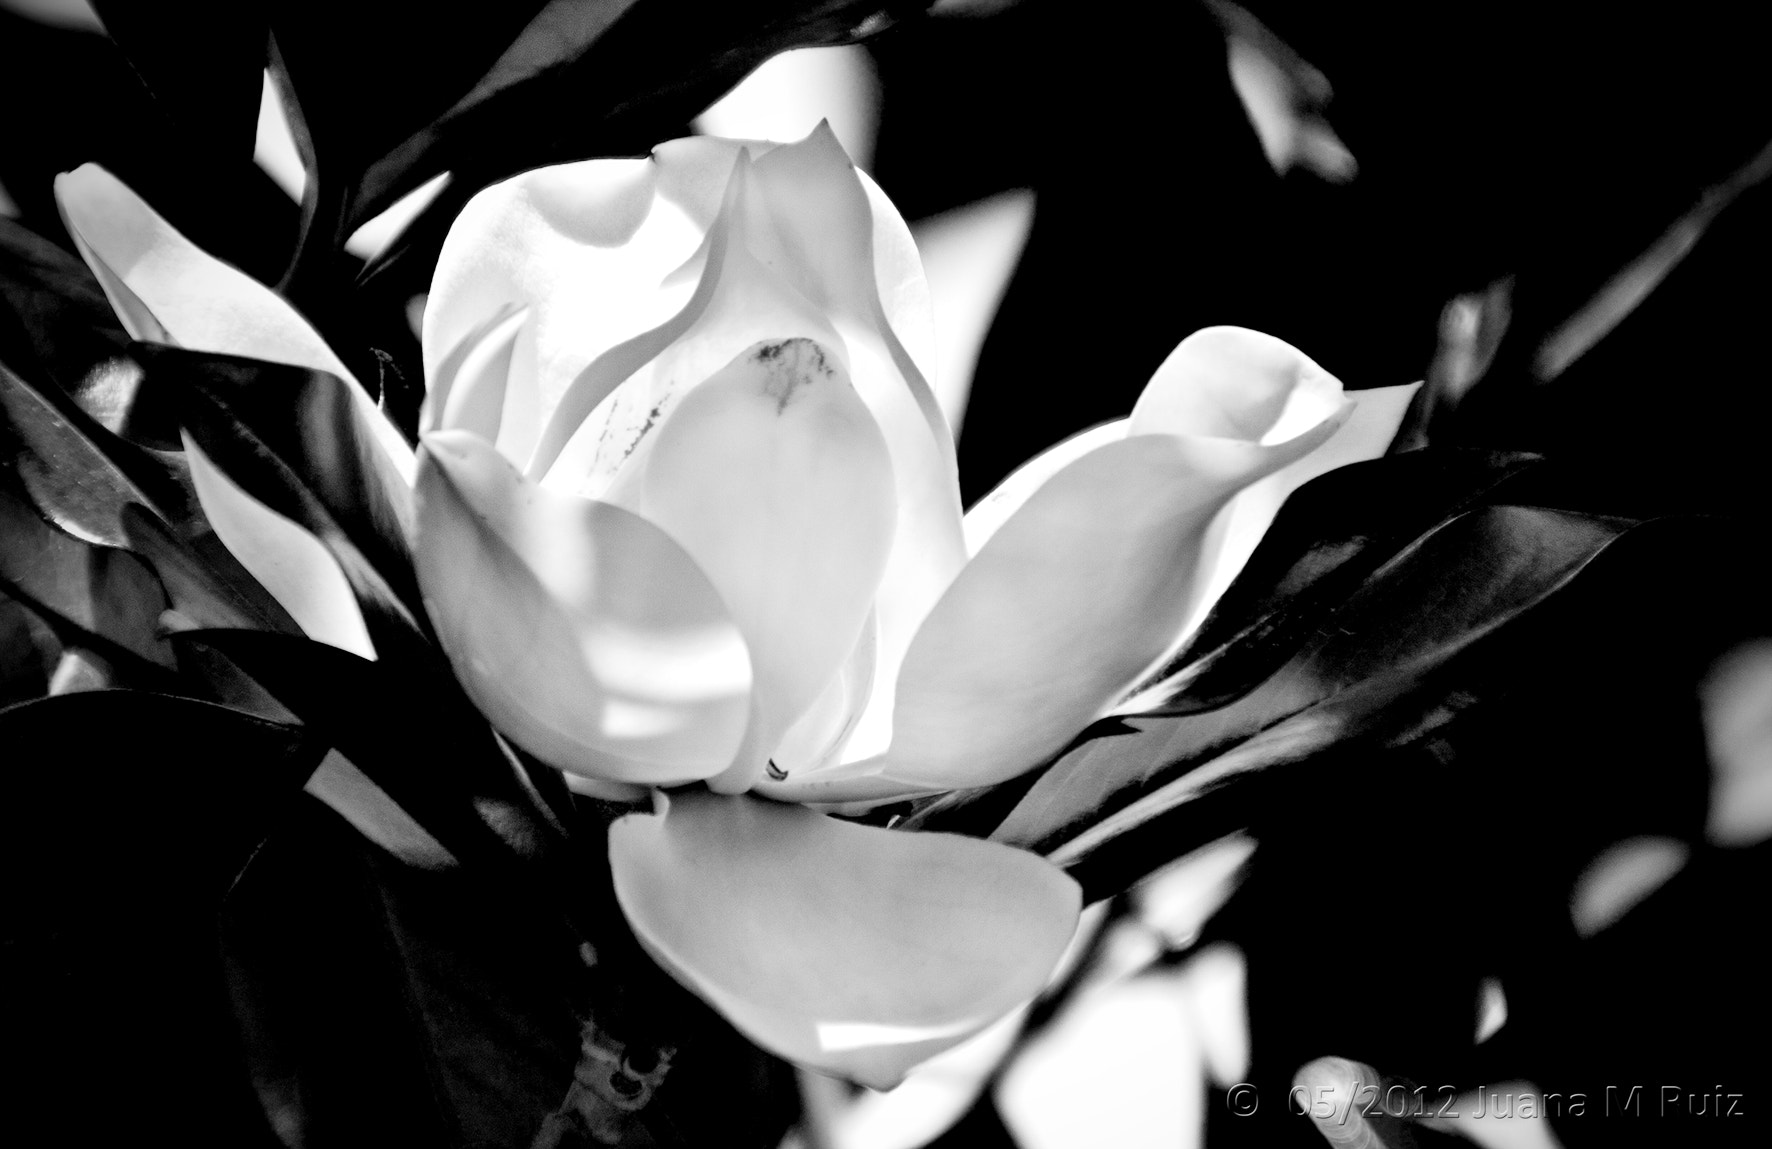 Photograph Magnolia by Juana Maria Ruiz on 500px